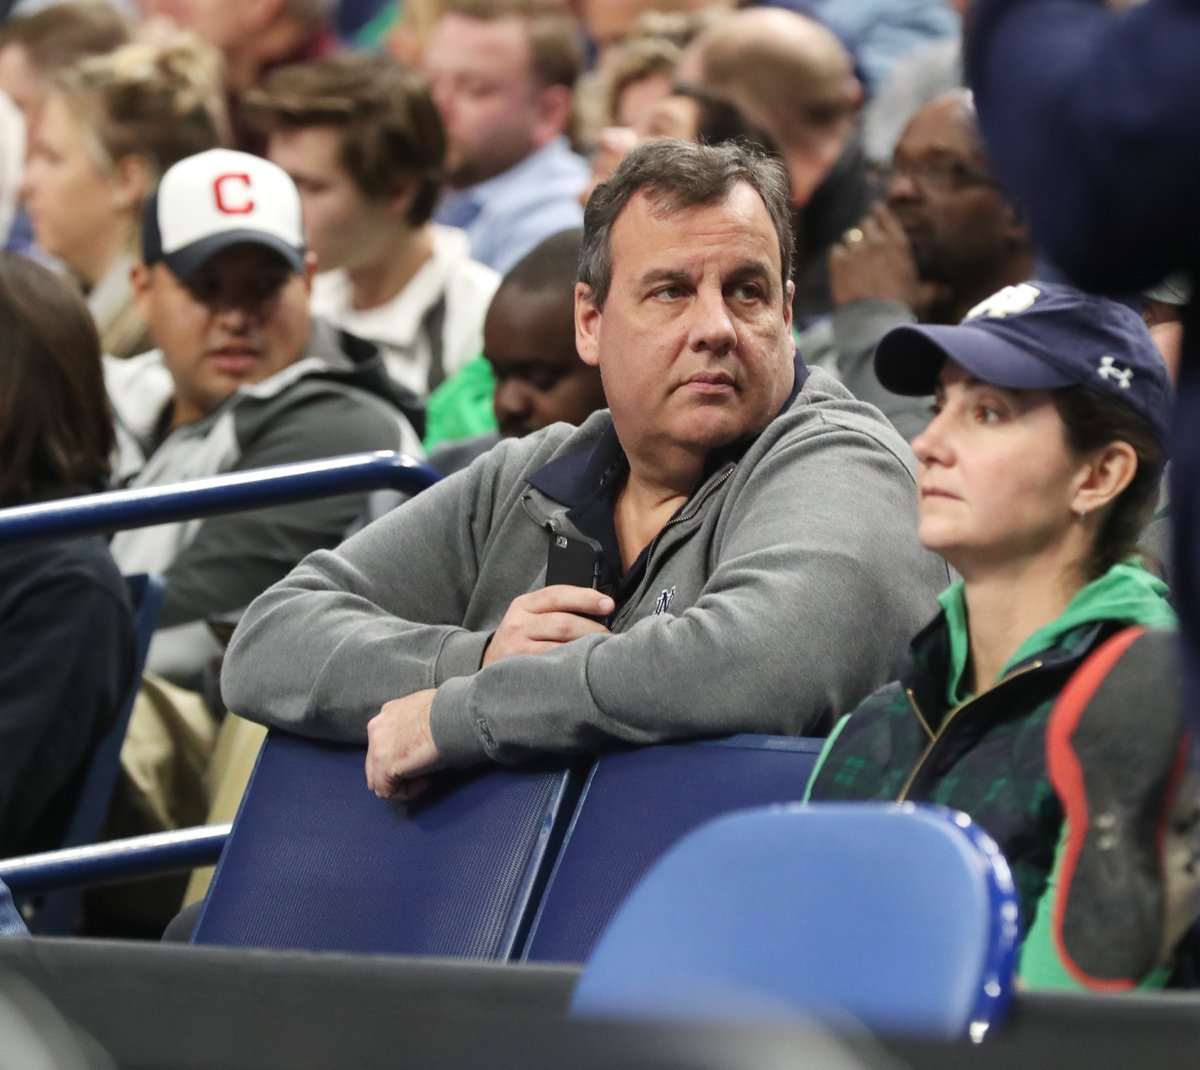 New Jersey Gov. Chris Christie watches Notre Dame-Princeton at KeyBank Center. (James P. McCoy/Buffalo News)